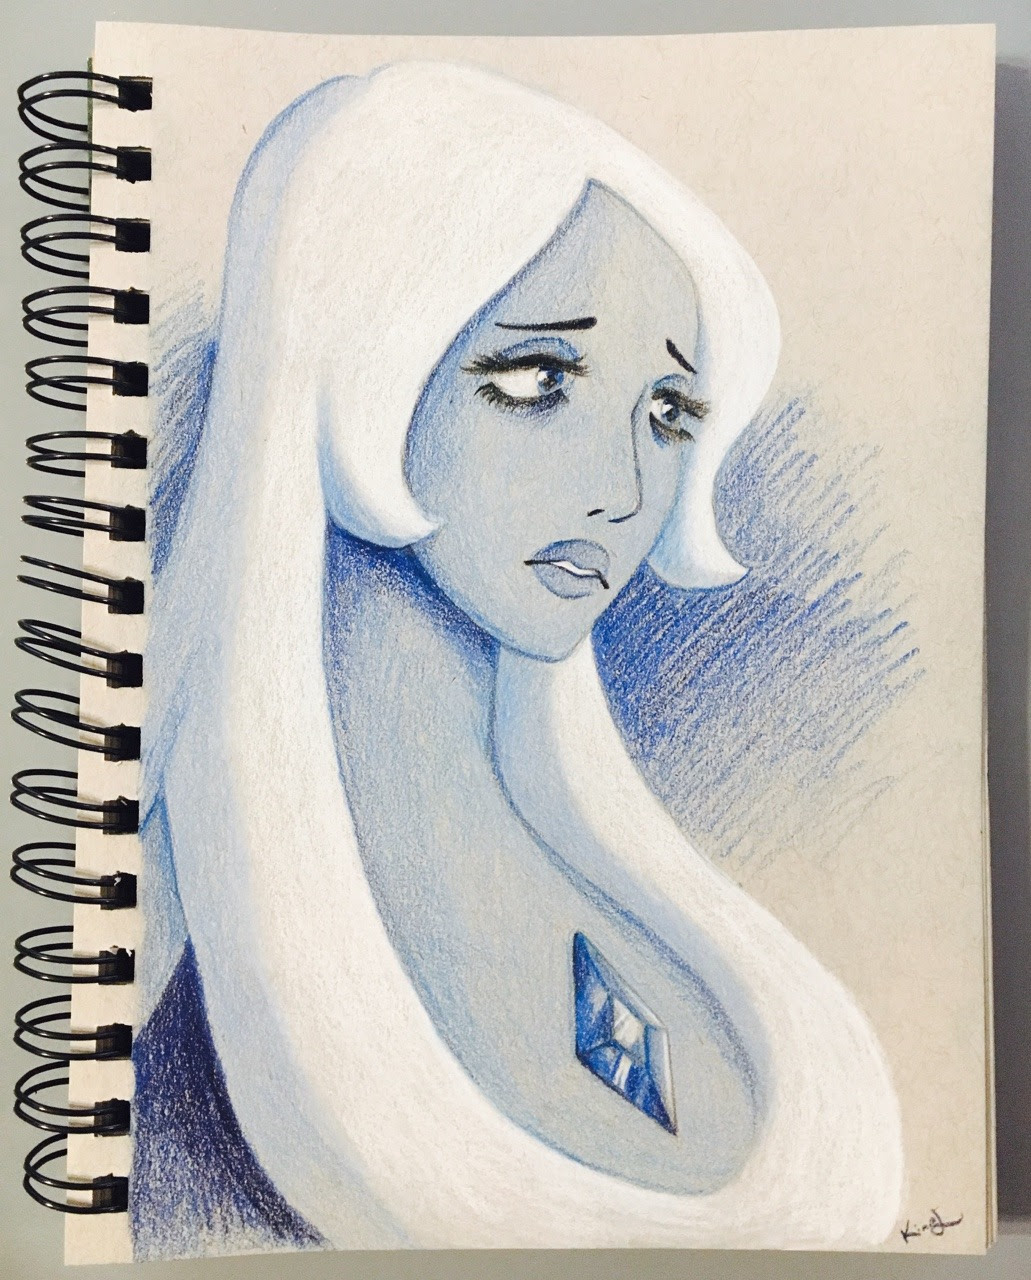 blue diamond on gray toned paper 💎😢